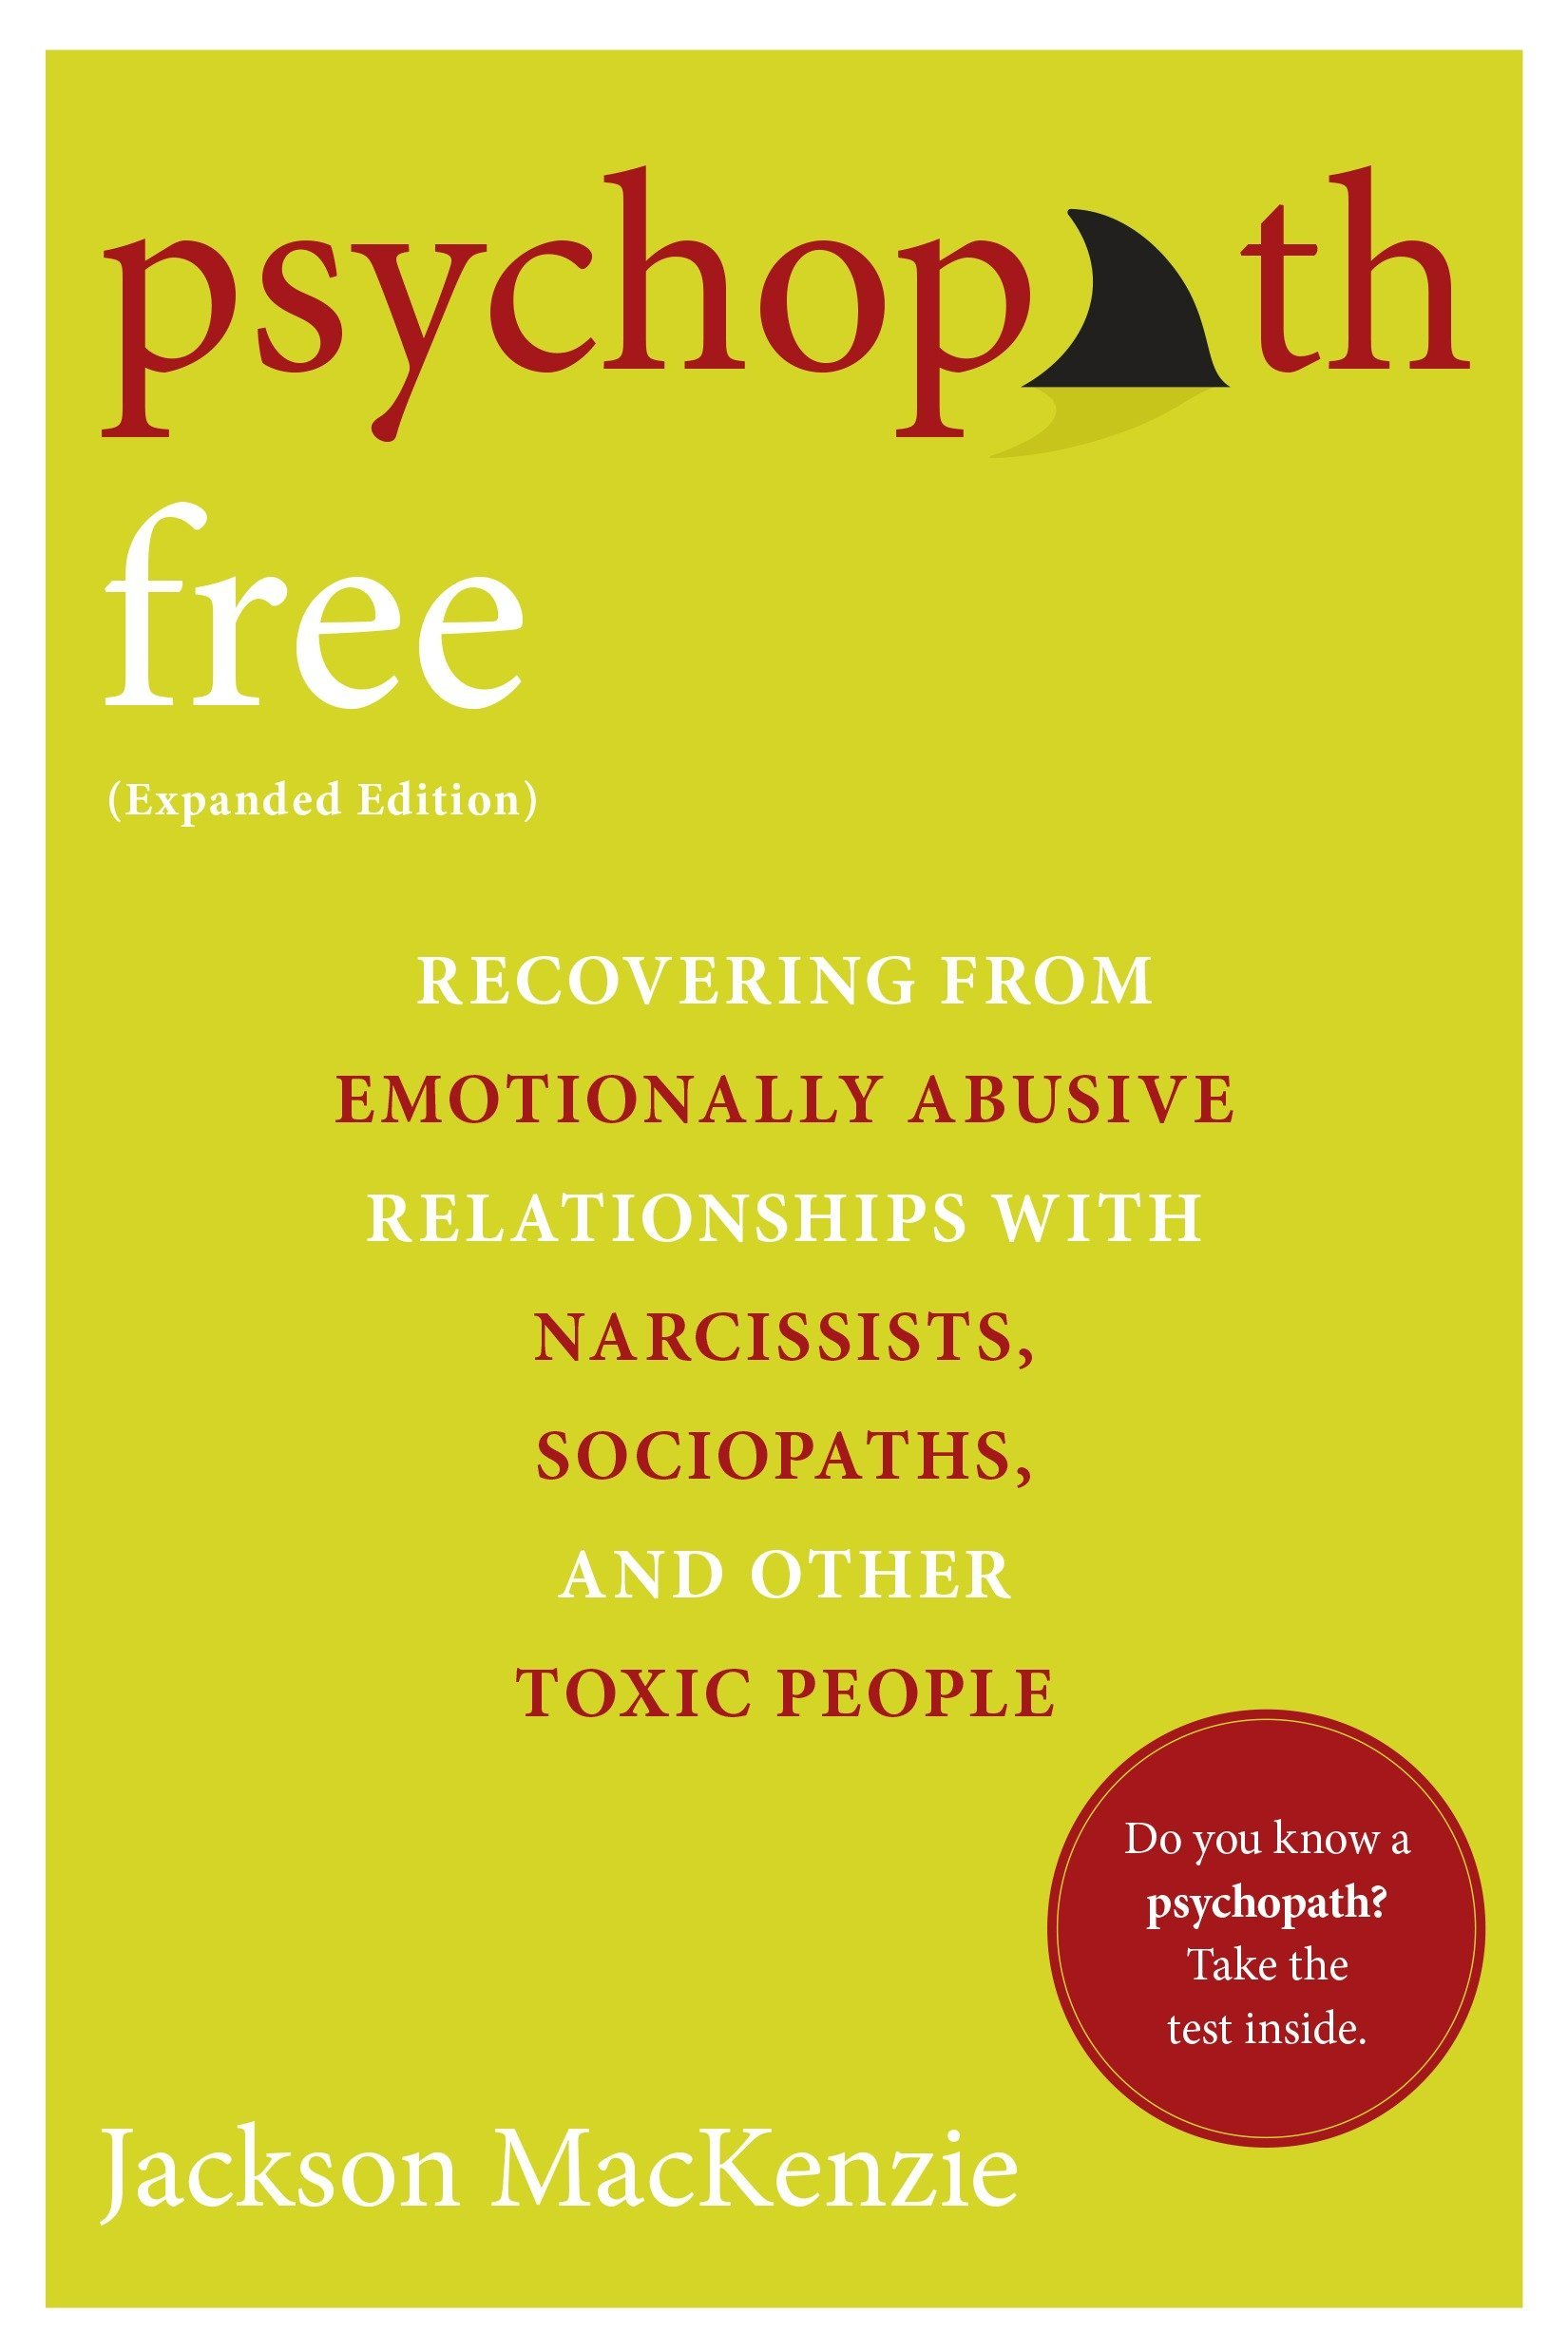 Psychopath Free Expanded Emotionally Relationships product image